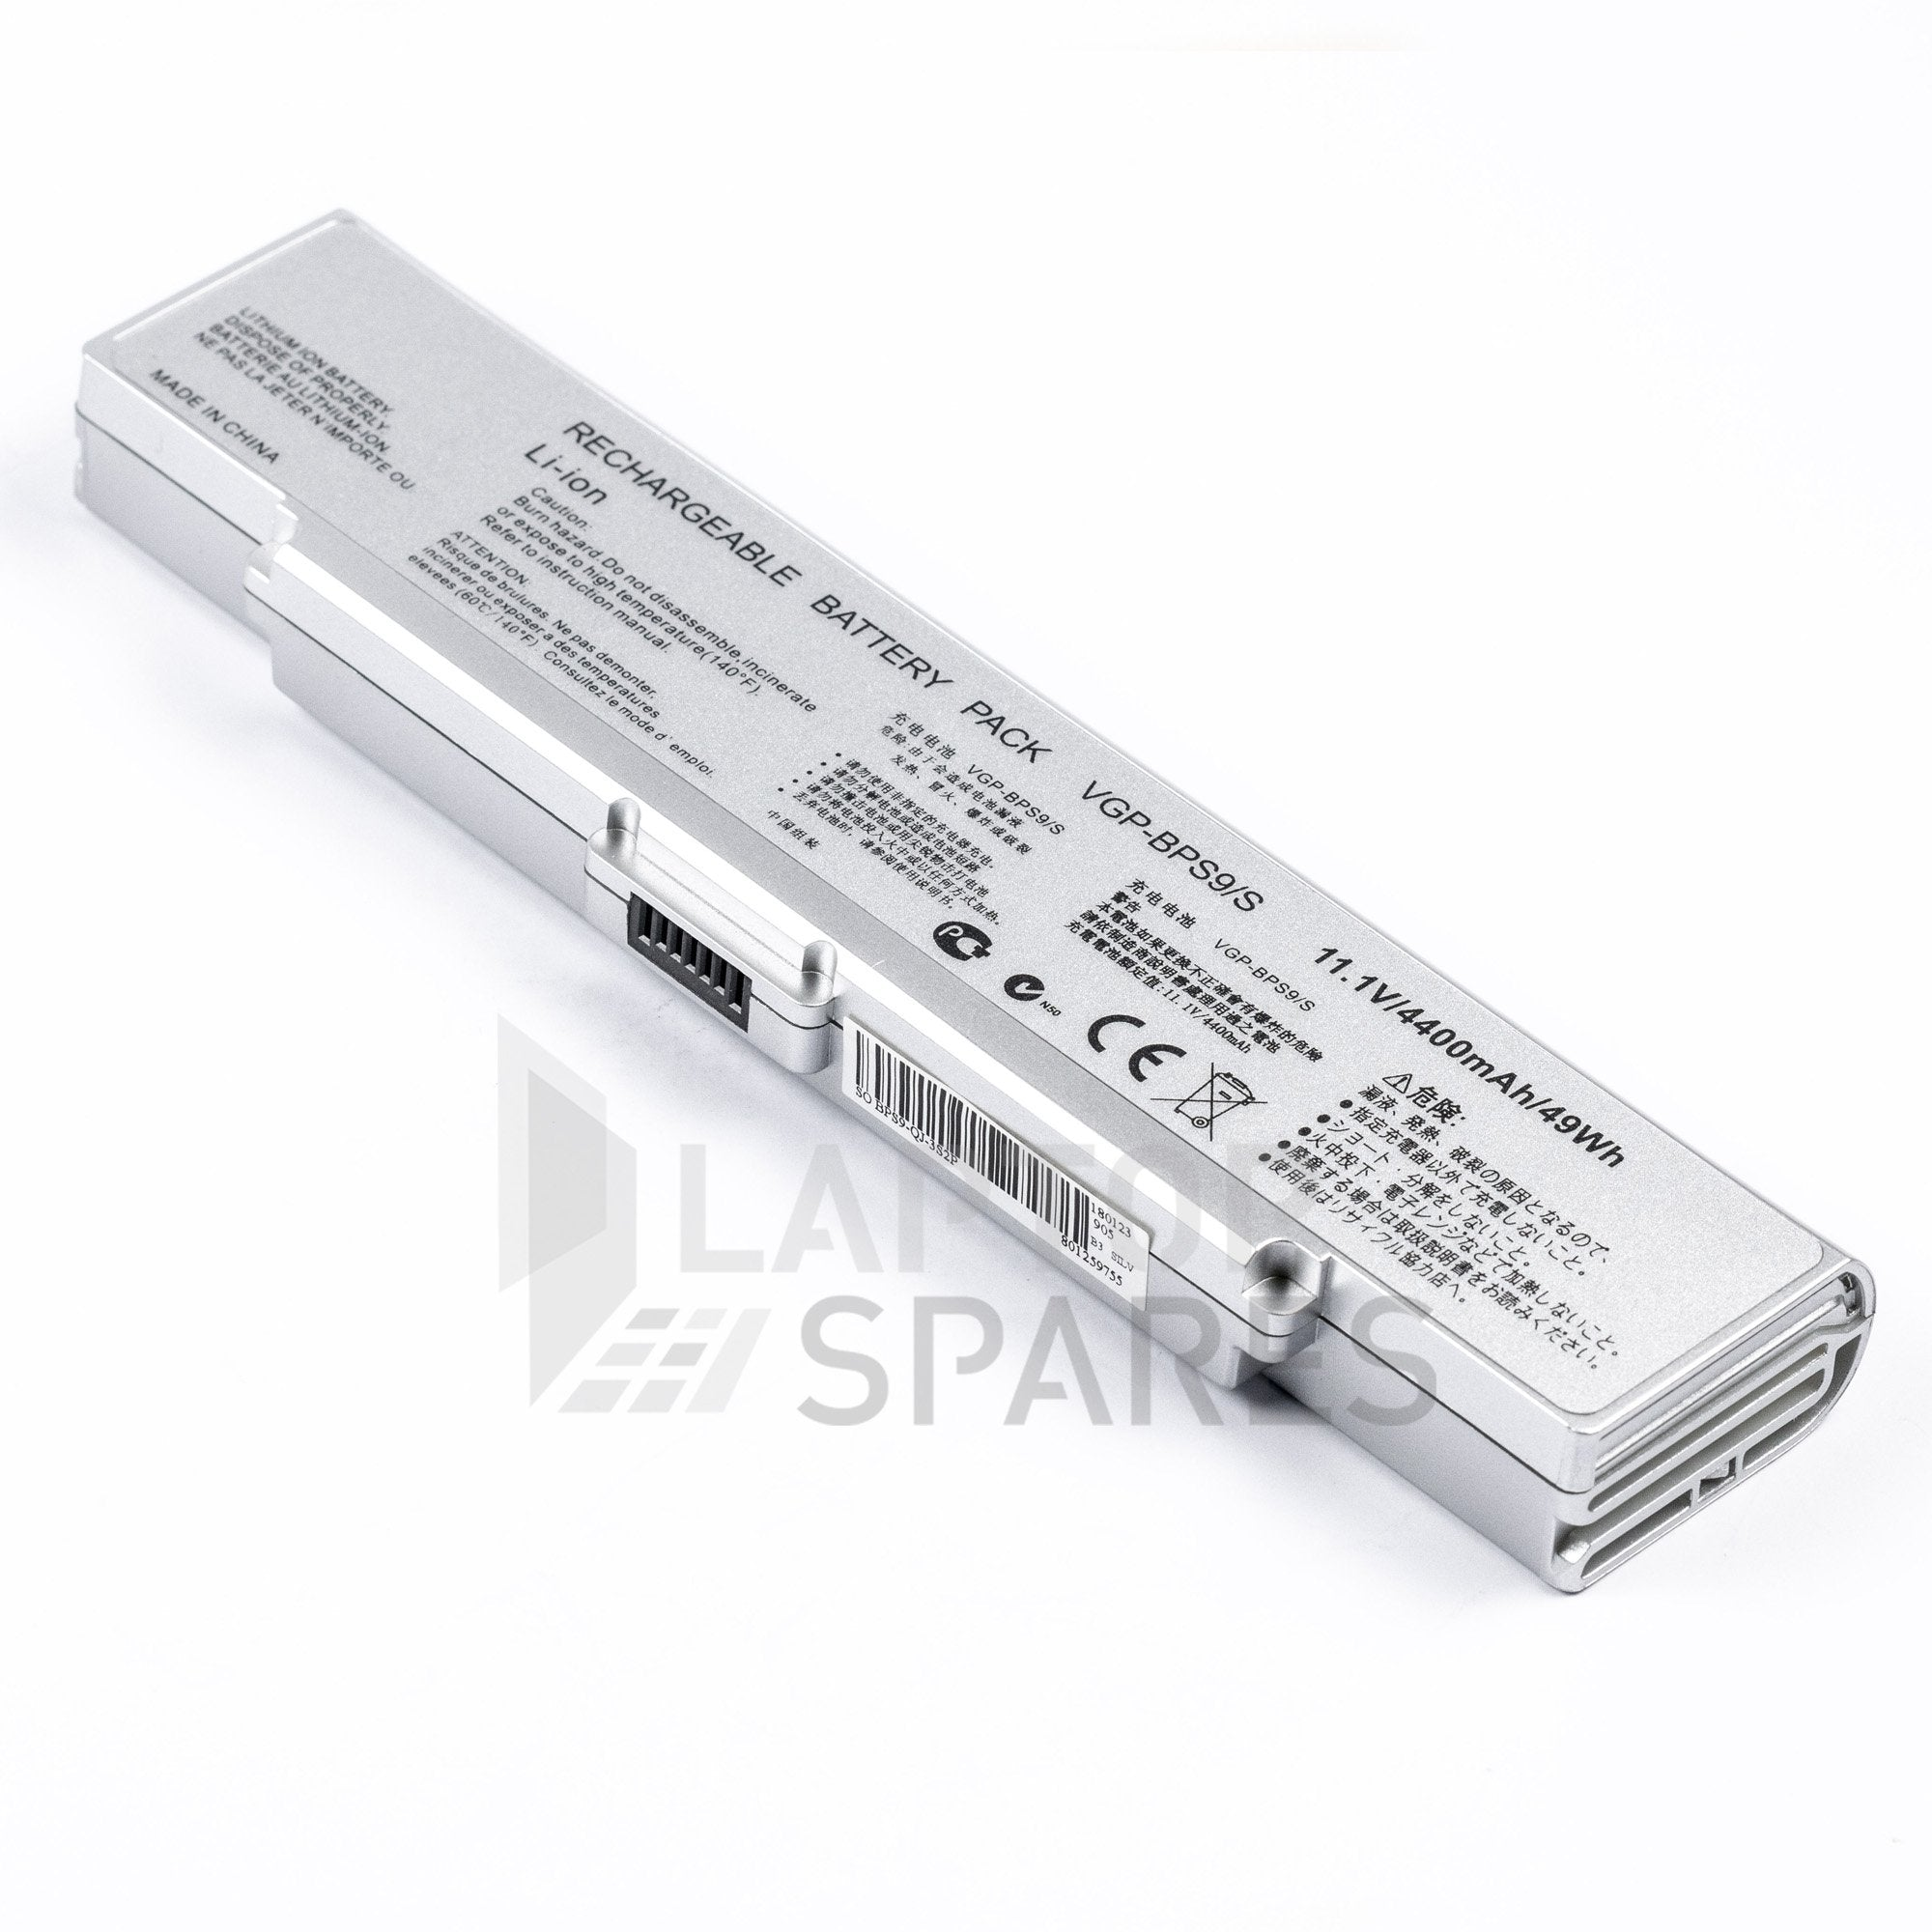 Sony VAIO VGN-SZ750N/C 4400mAh 6 Cell Battery